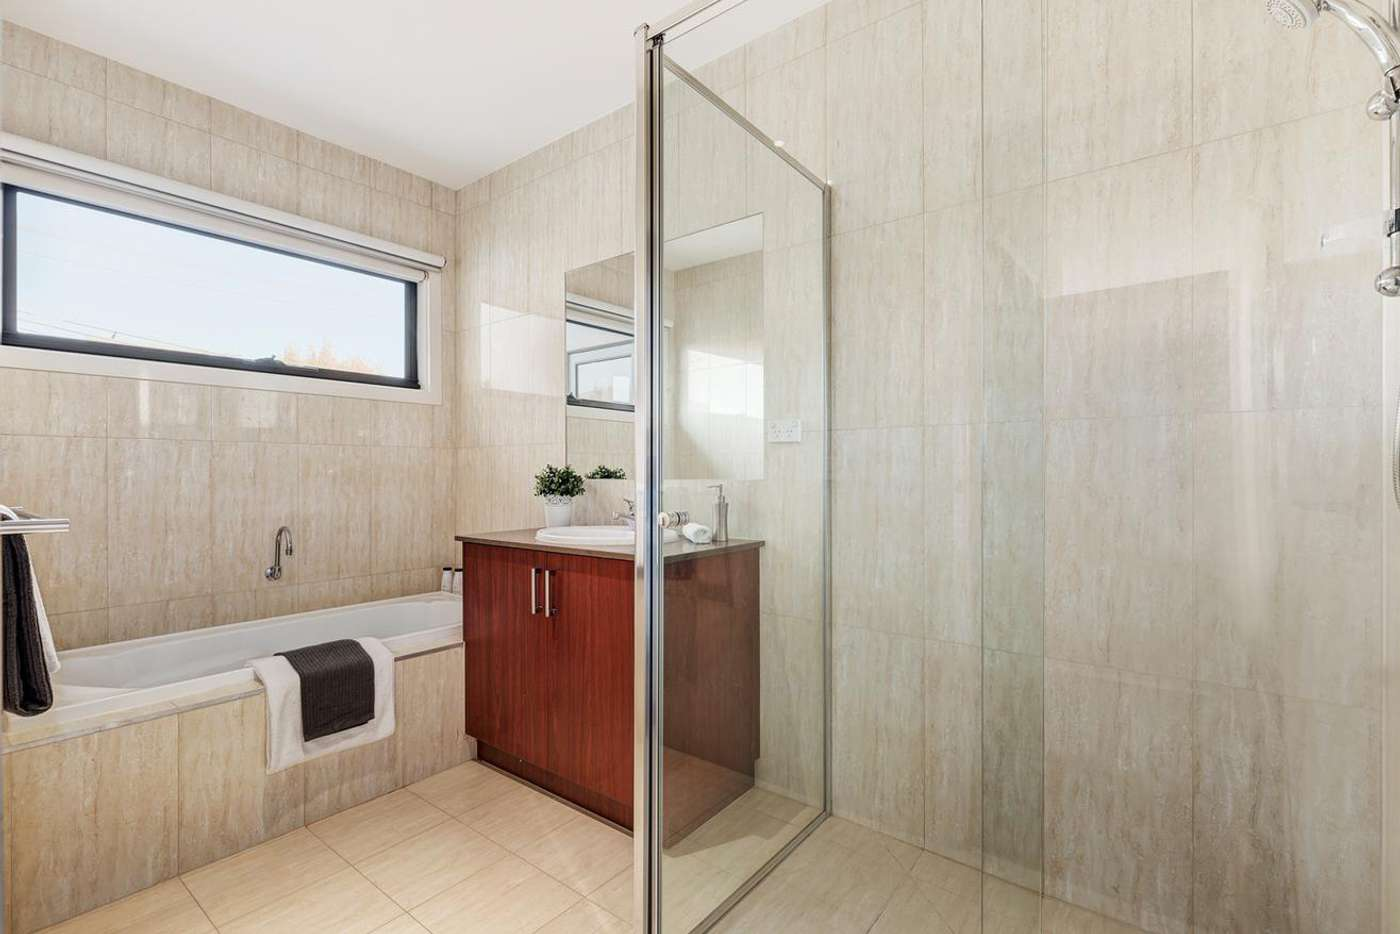 Seventh view of Homely house listing, 1/1 Prince Edward Avenue, Mckinnon VIC 3204